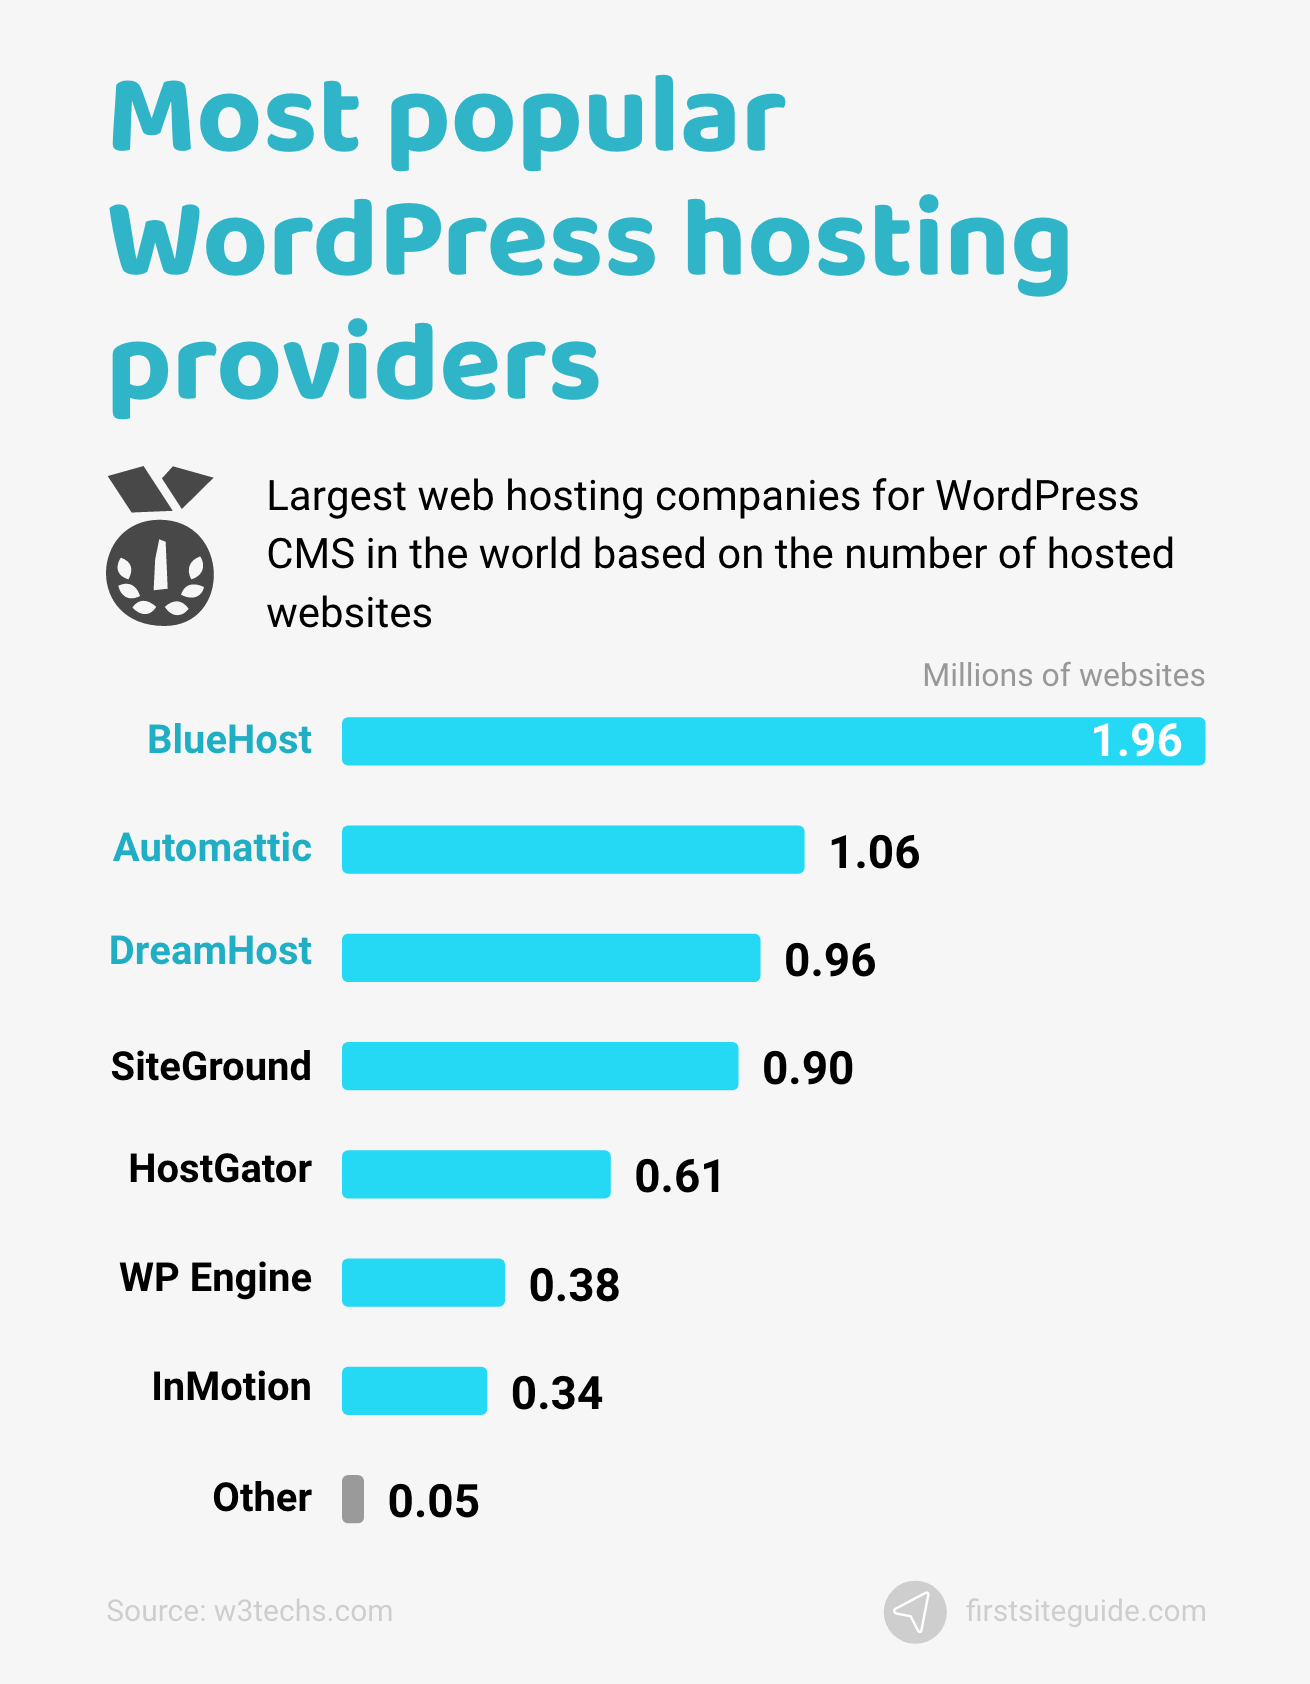 Most popular WordPress hosting providers